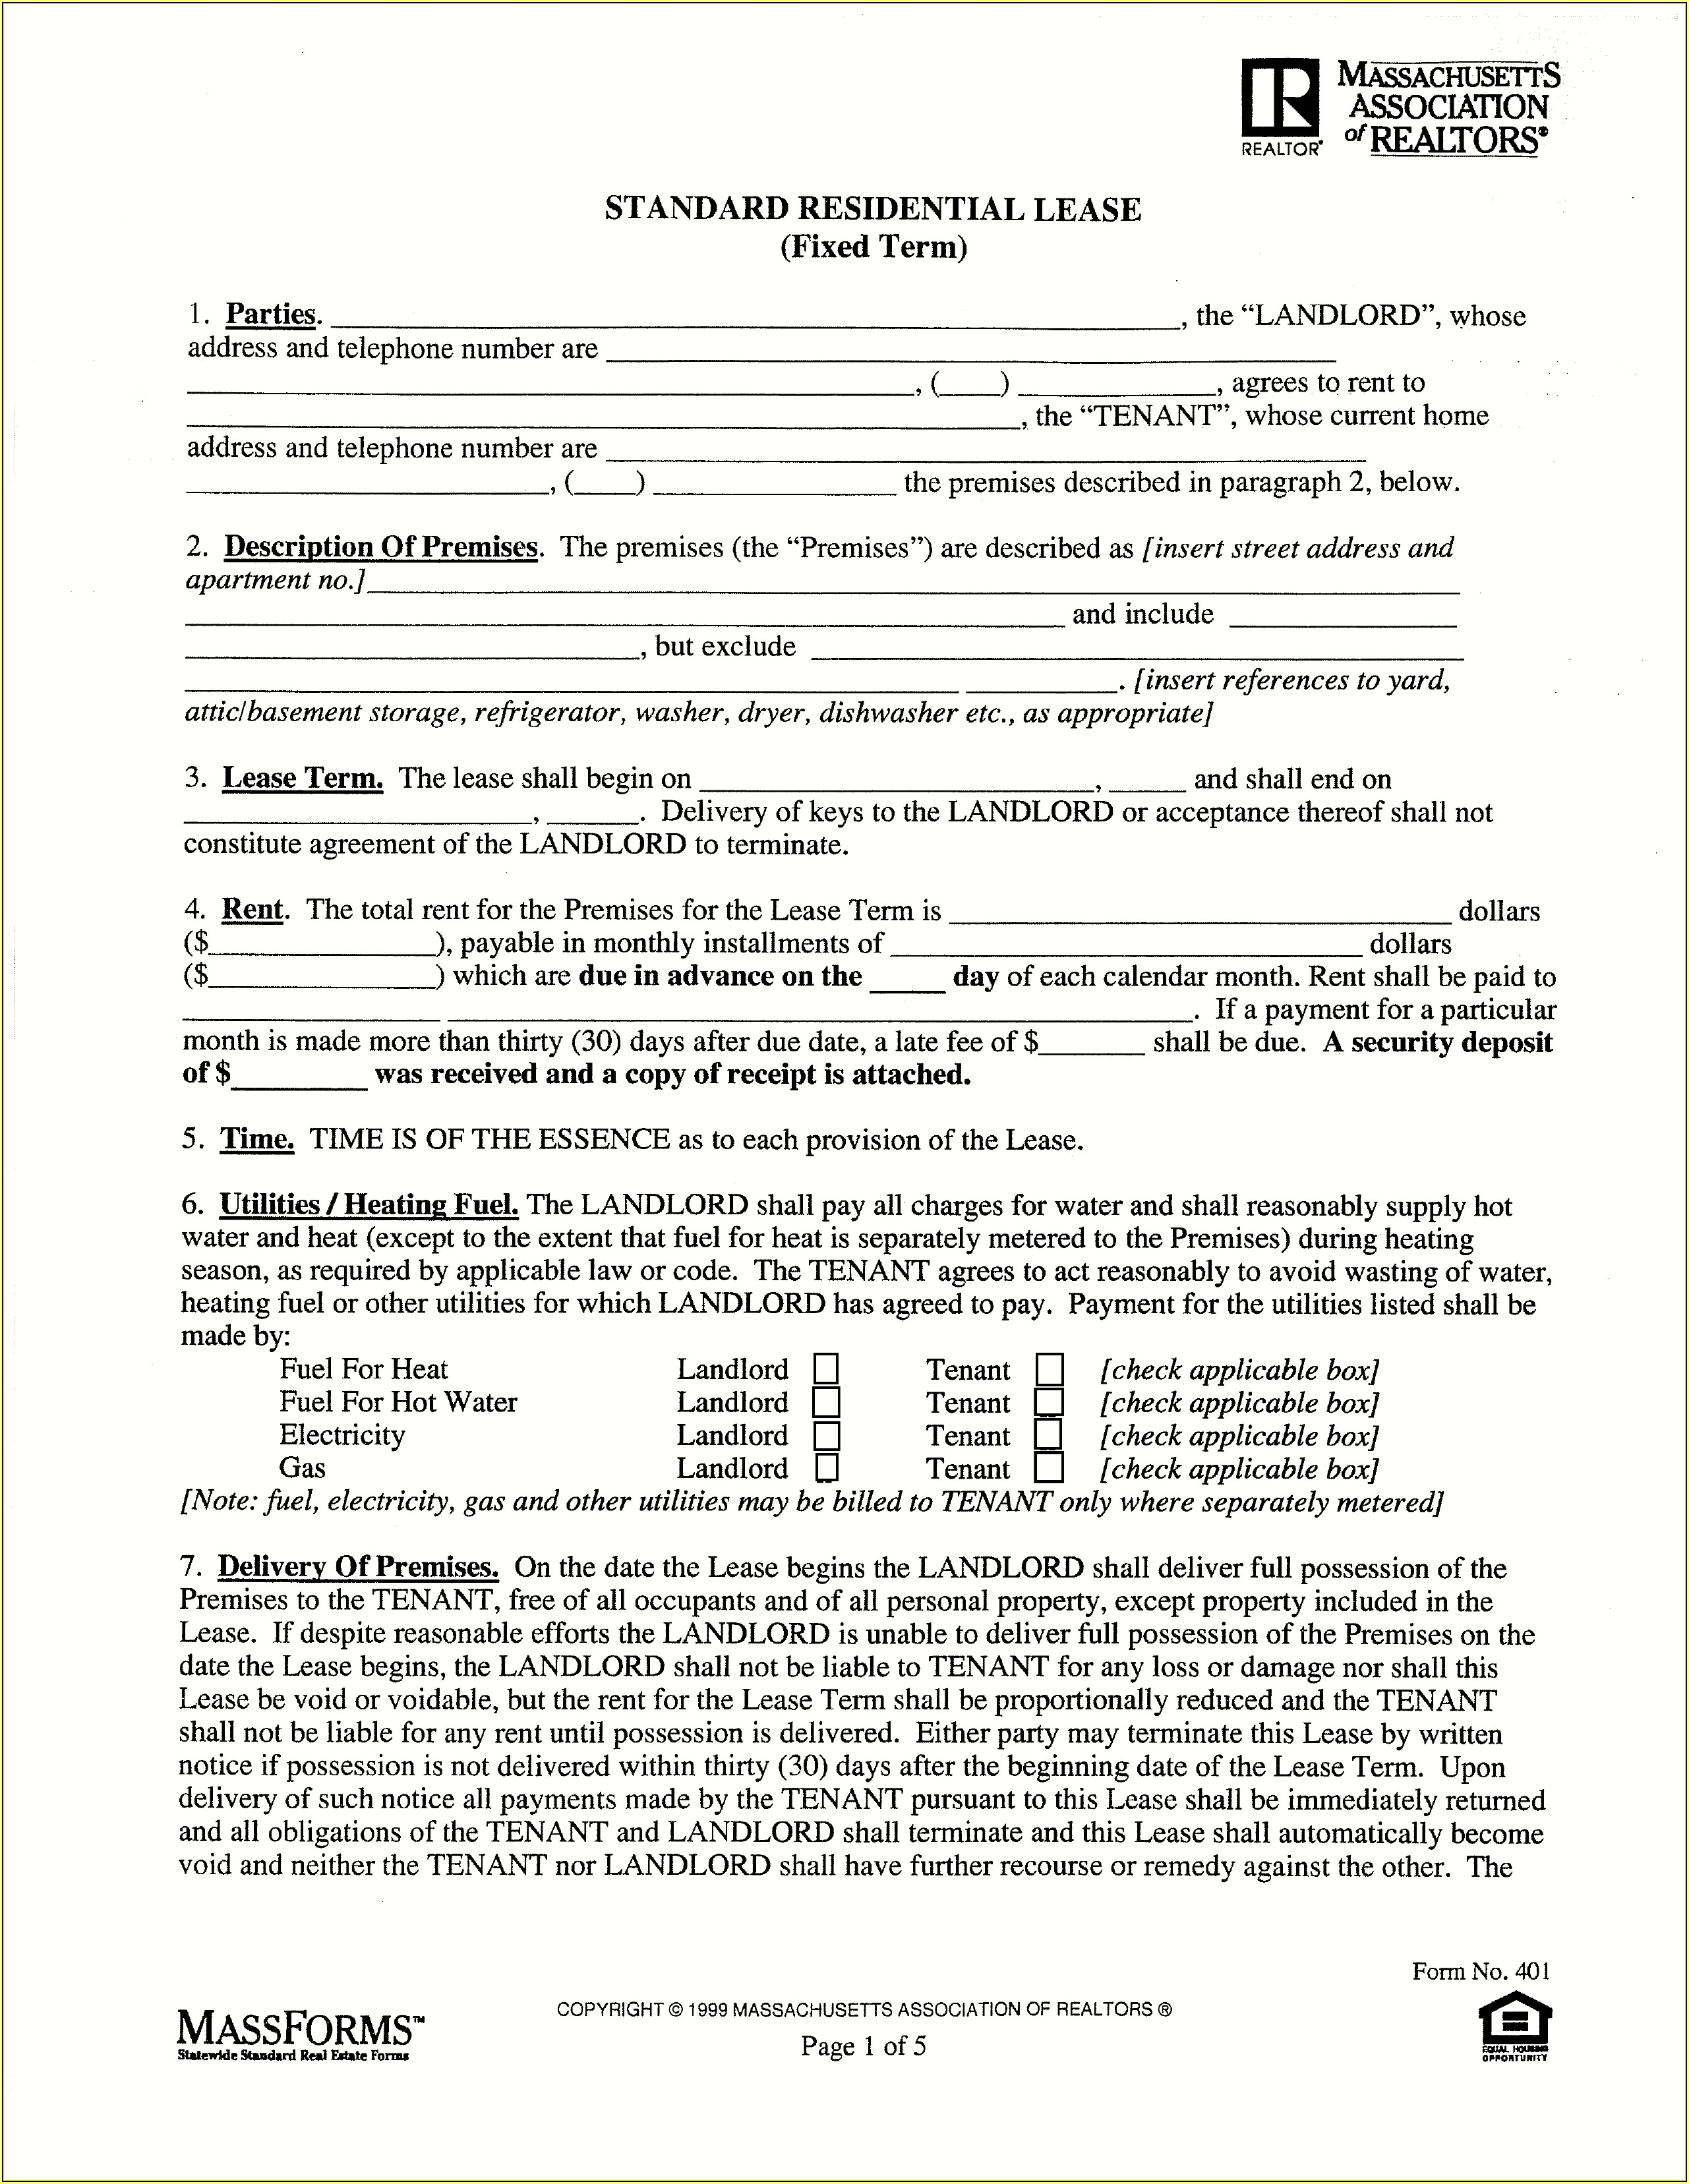 Standard Form Of Store Lease New York Real Estate Board